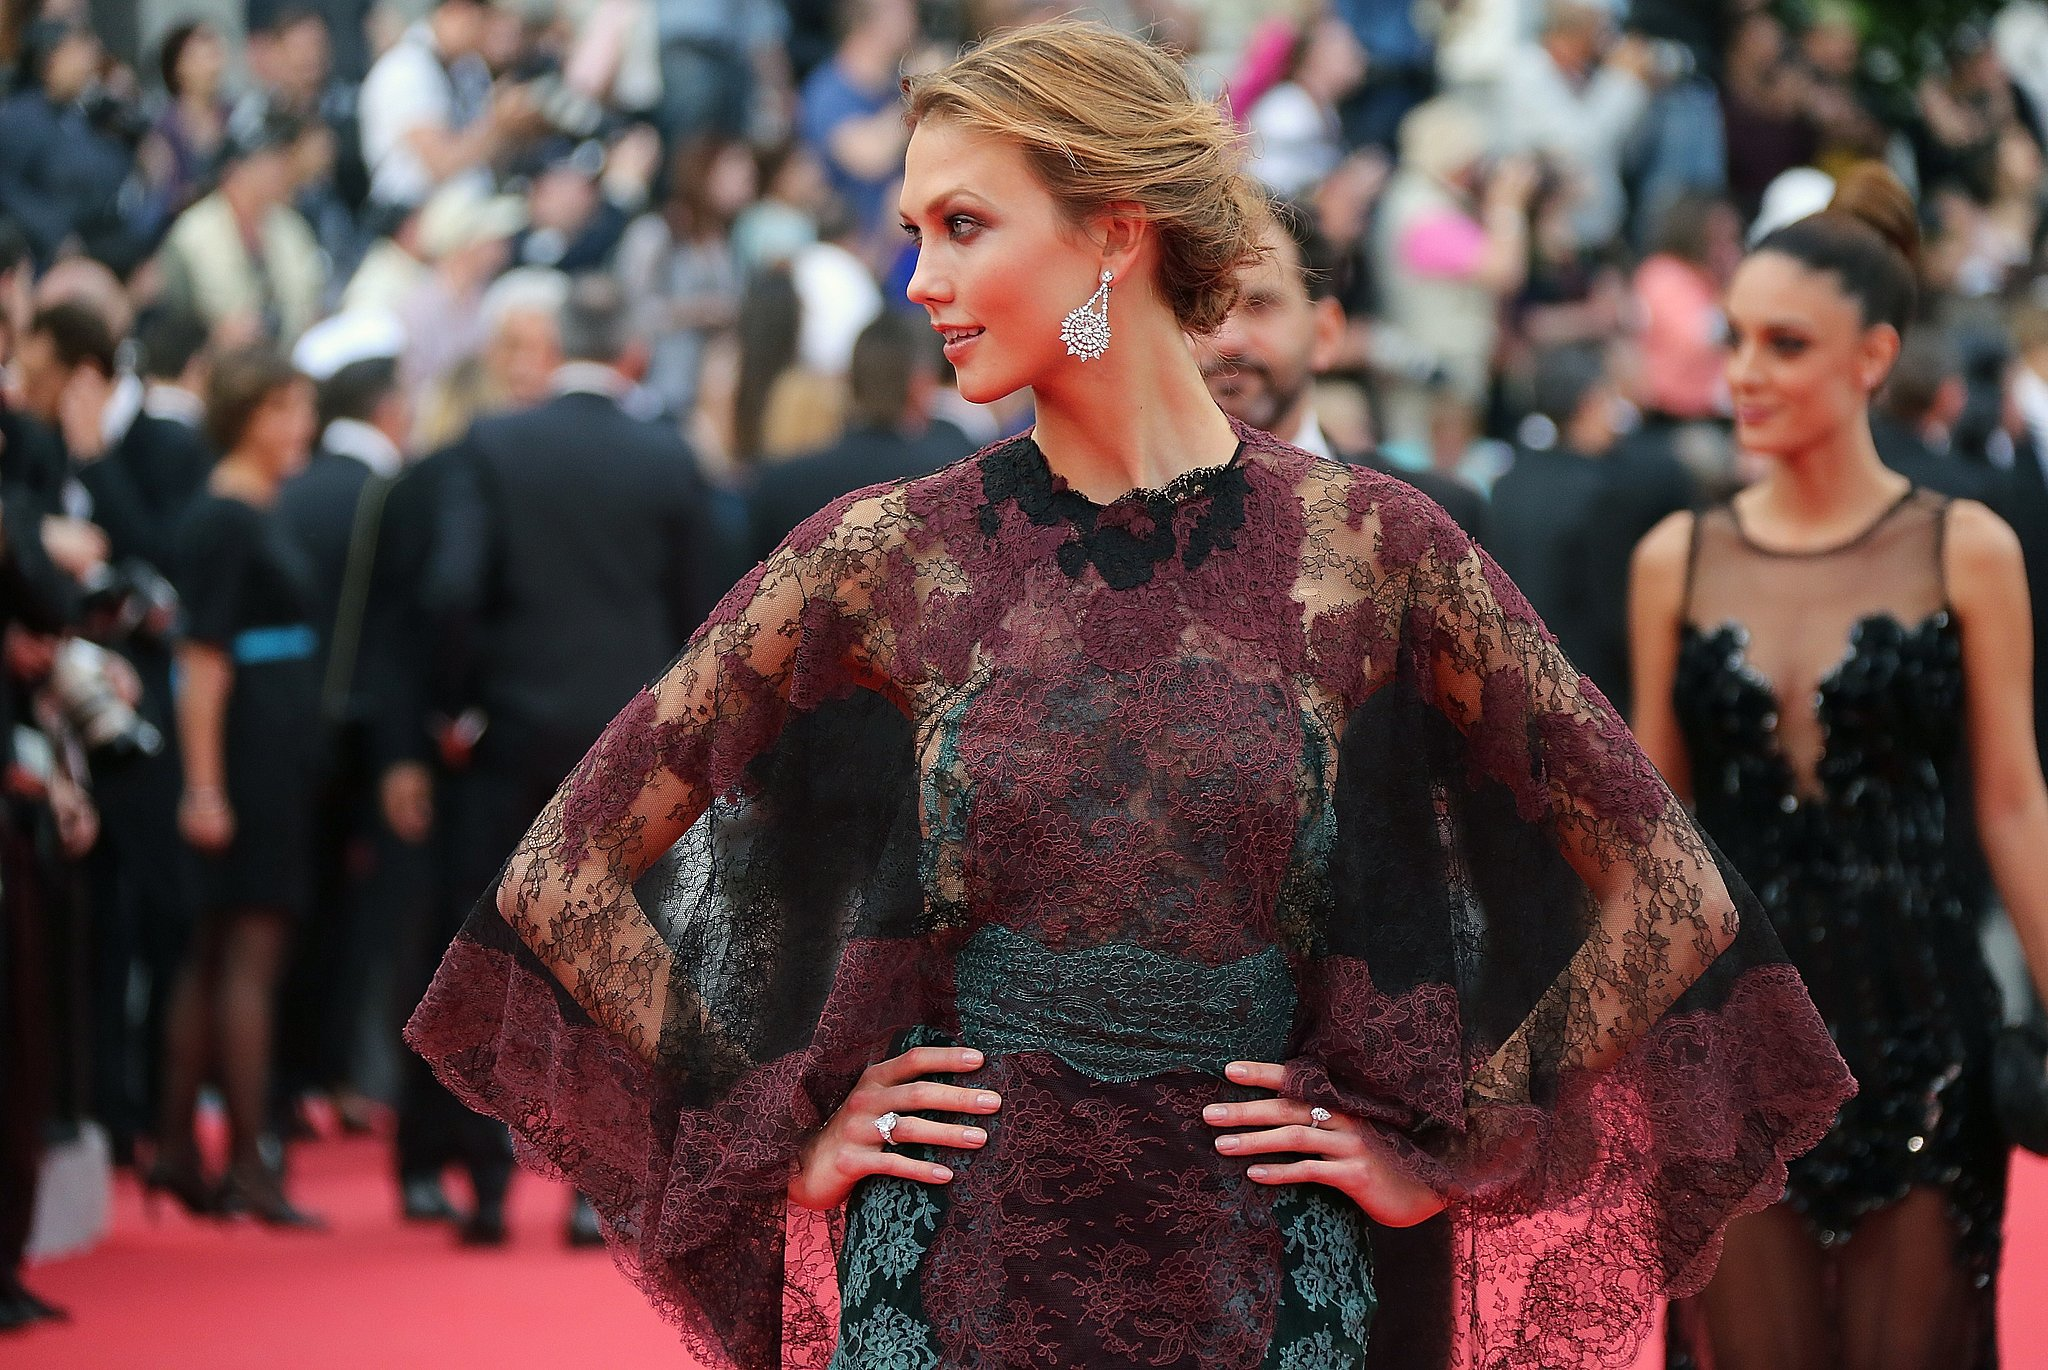 Karlie Kloss at the Grace of Monaco Premiere